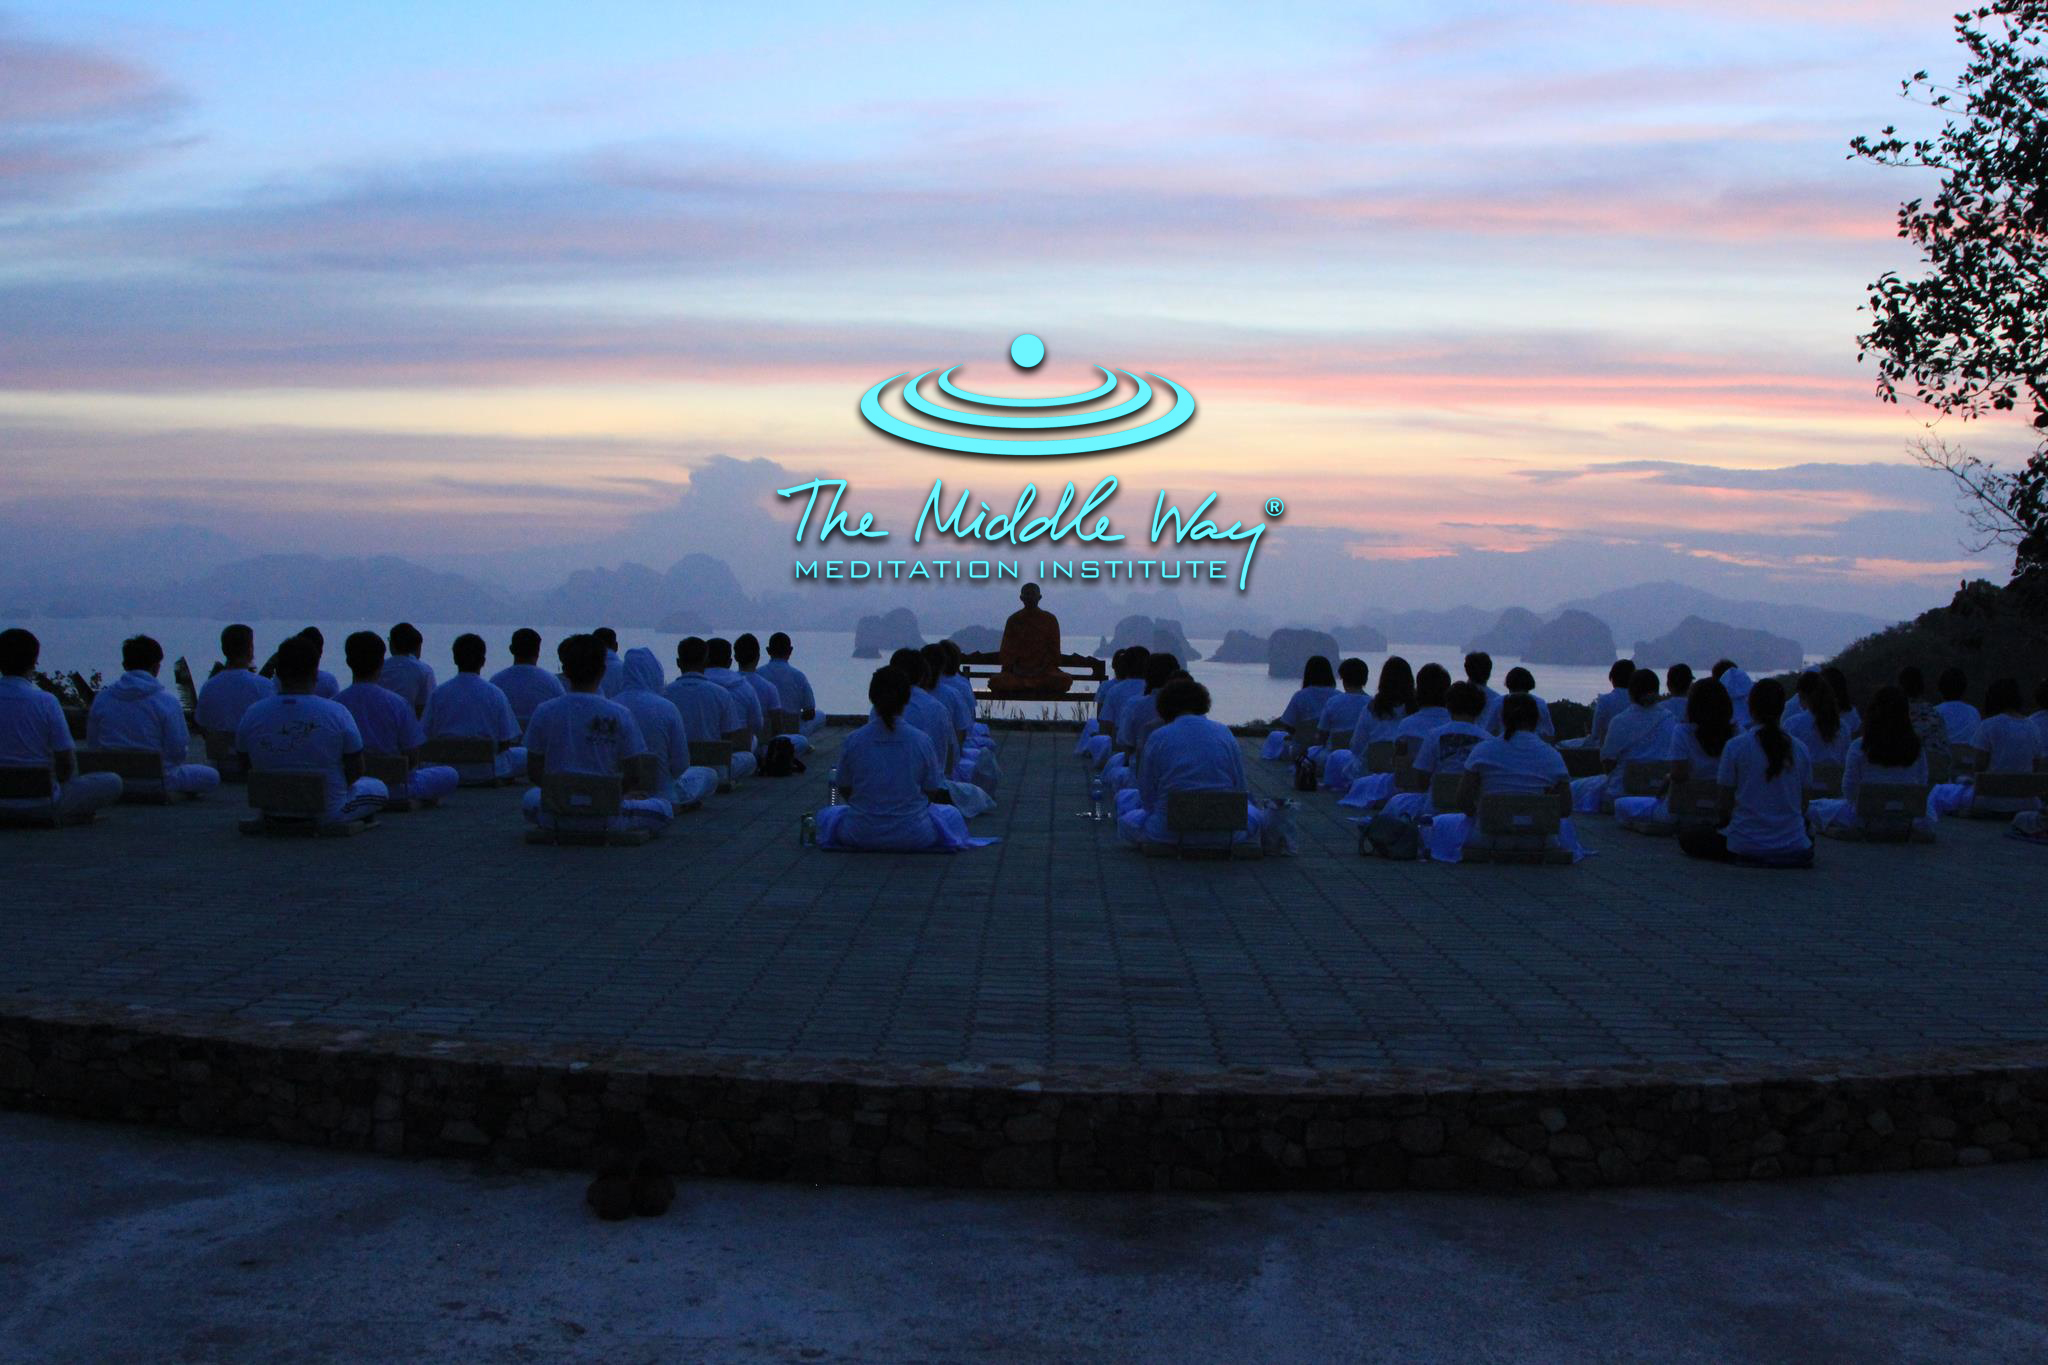 the-middle-way-meditation-institute-pathum-thani-thailand-9